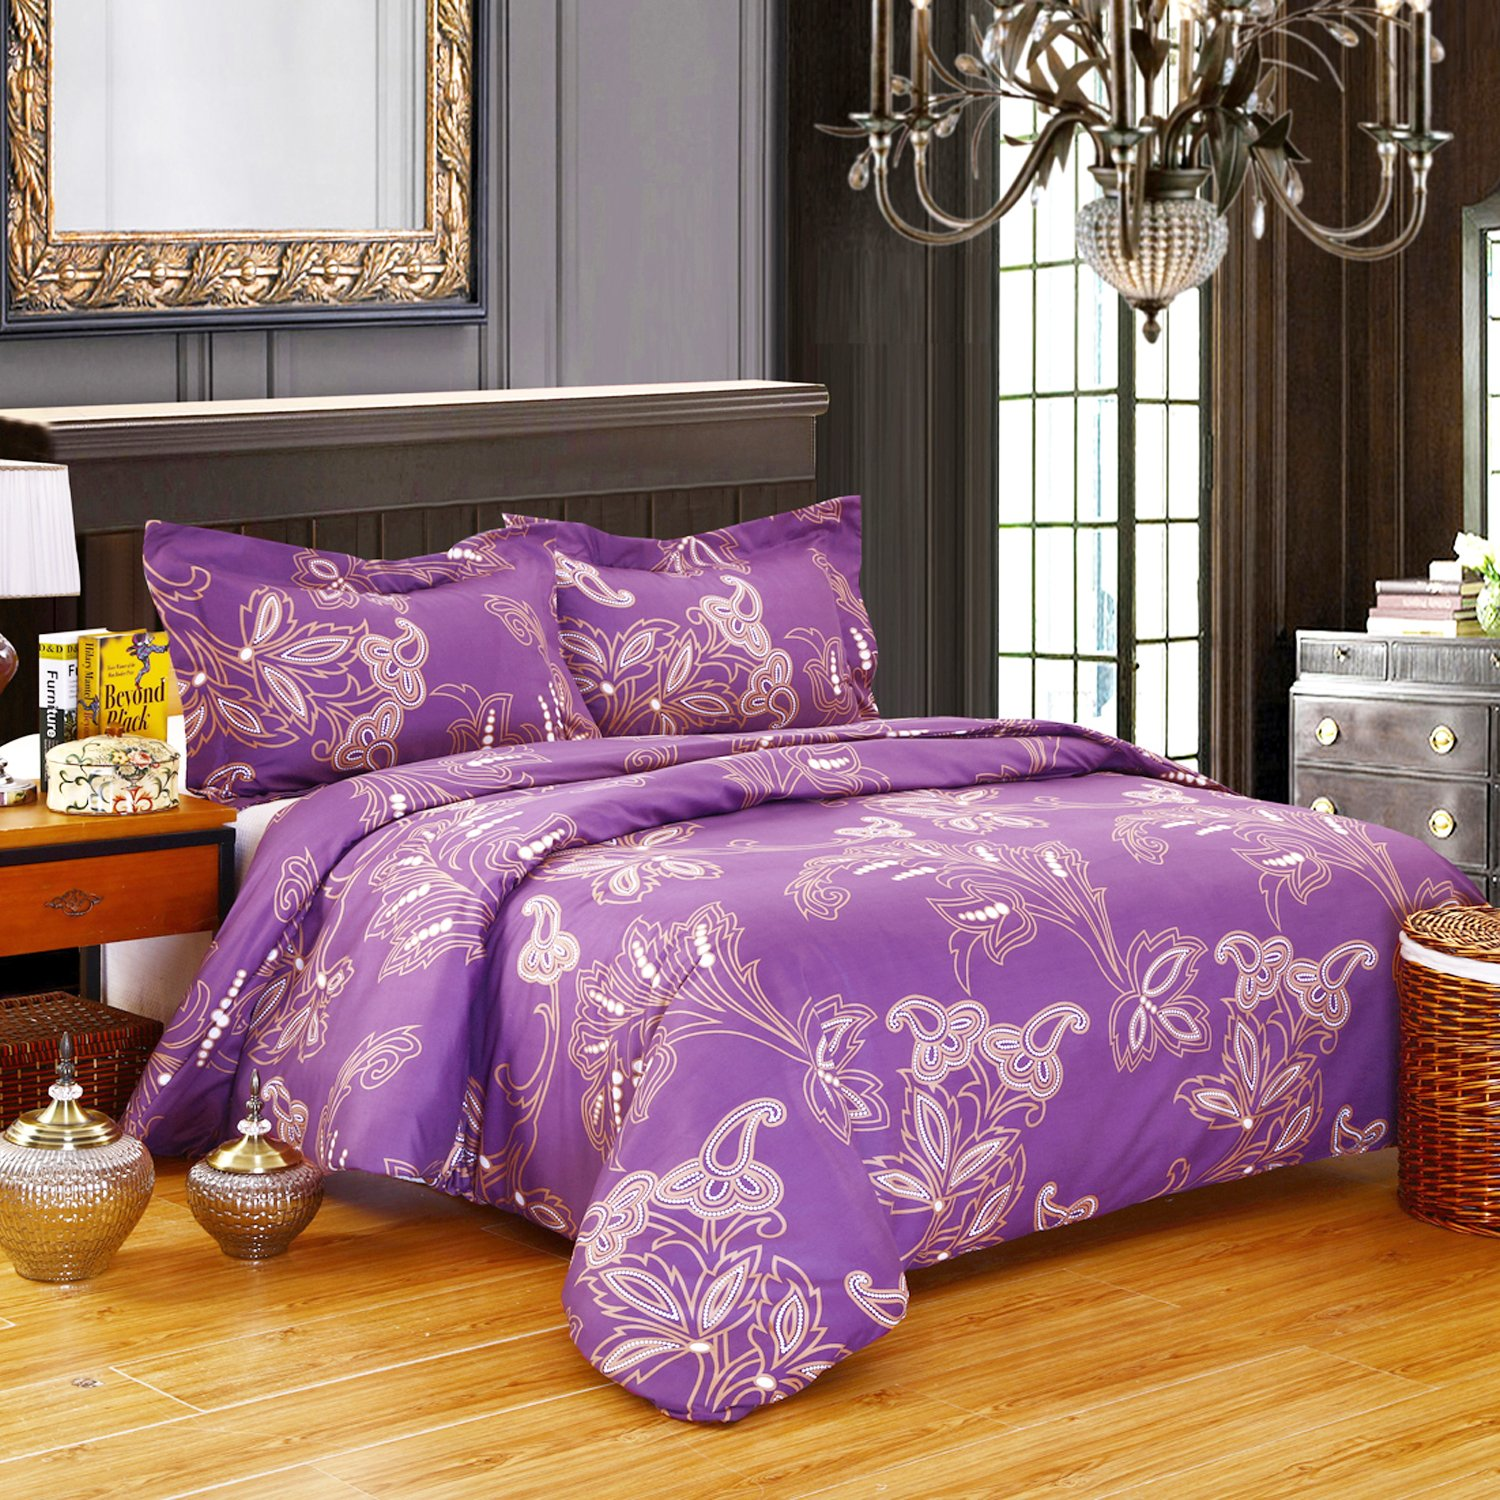 DelbouTree 3pcs Bedding Set